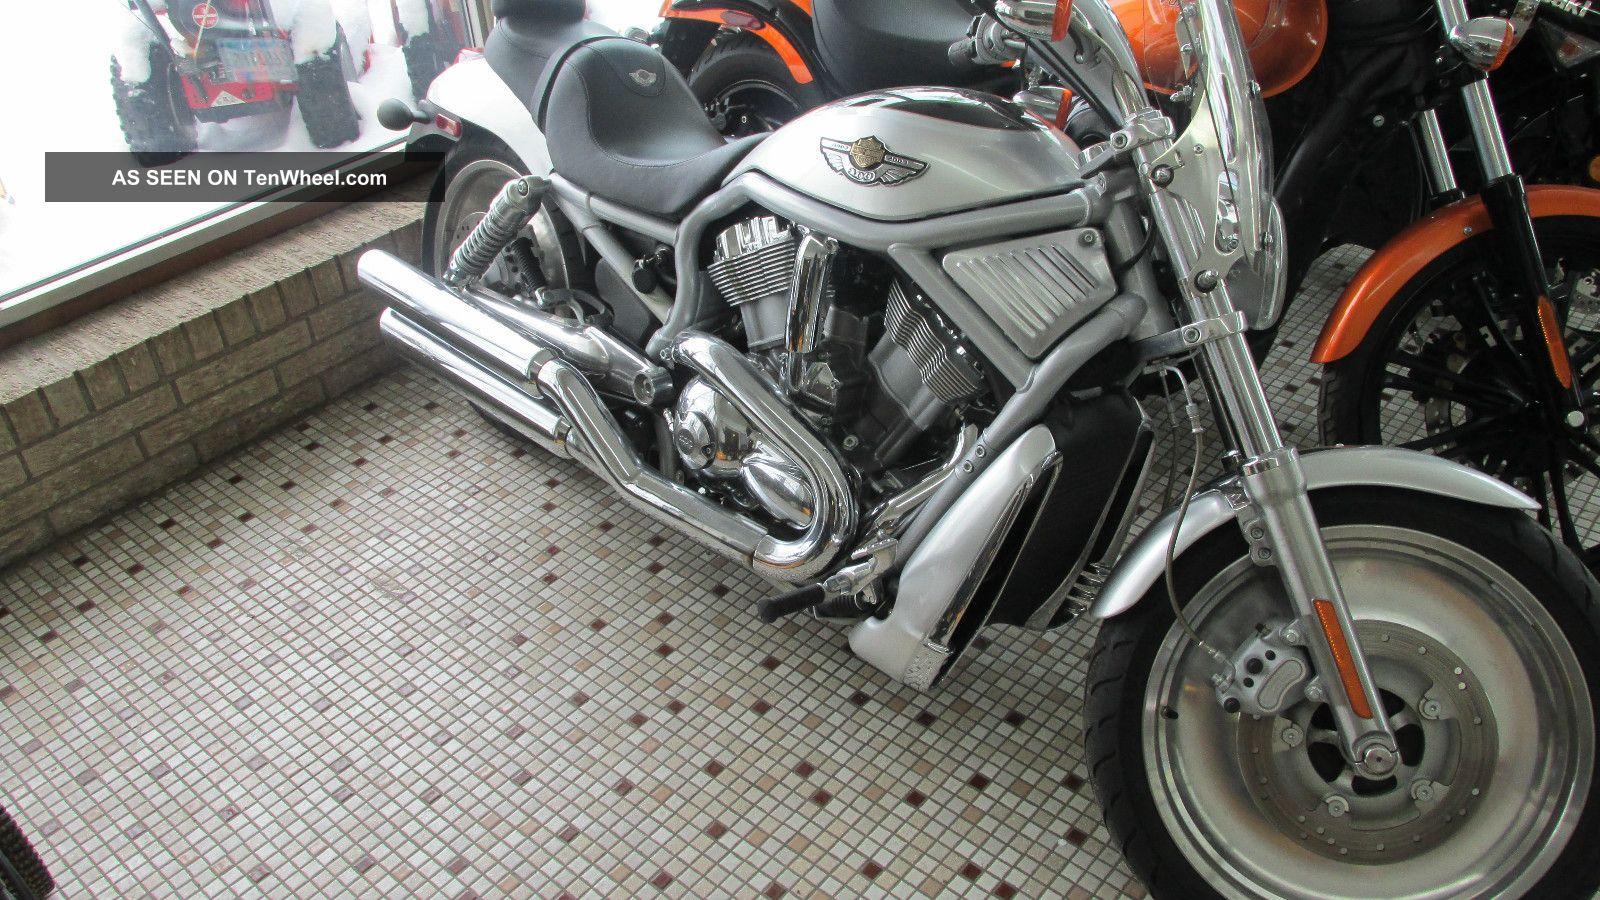 2003 Harley Davidson Vrod 100th Anniversary Edition With Some Extra Other photo